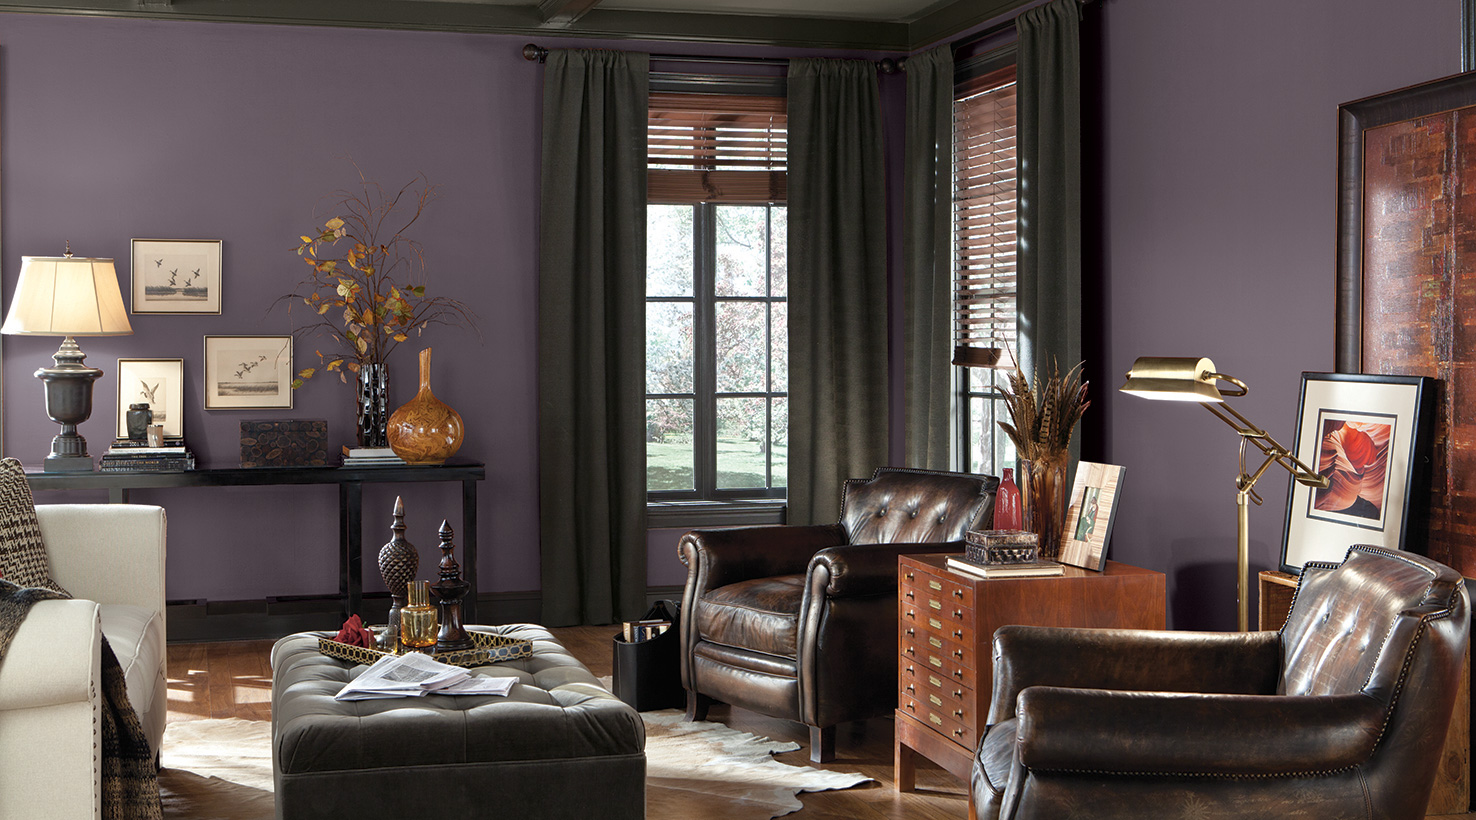 Vibrant Violet National Painting Week From Sherwin Williams